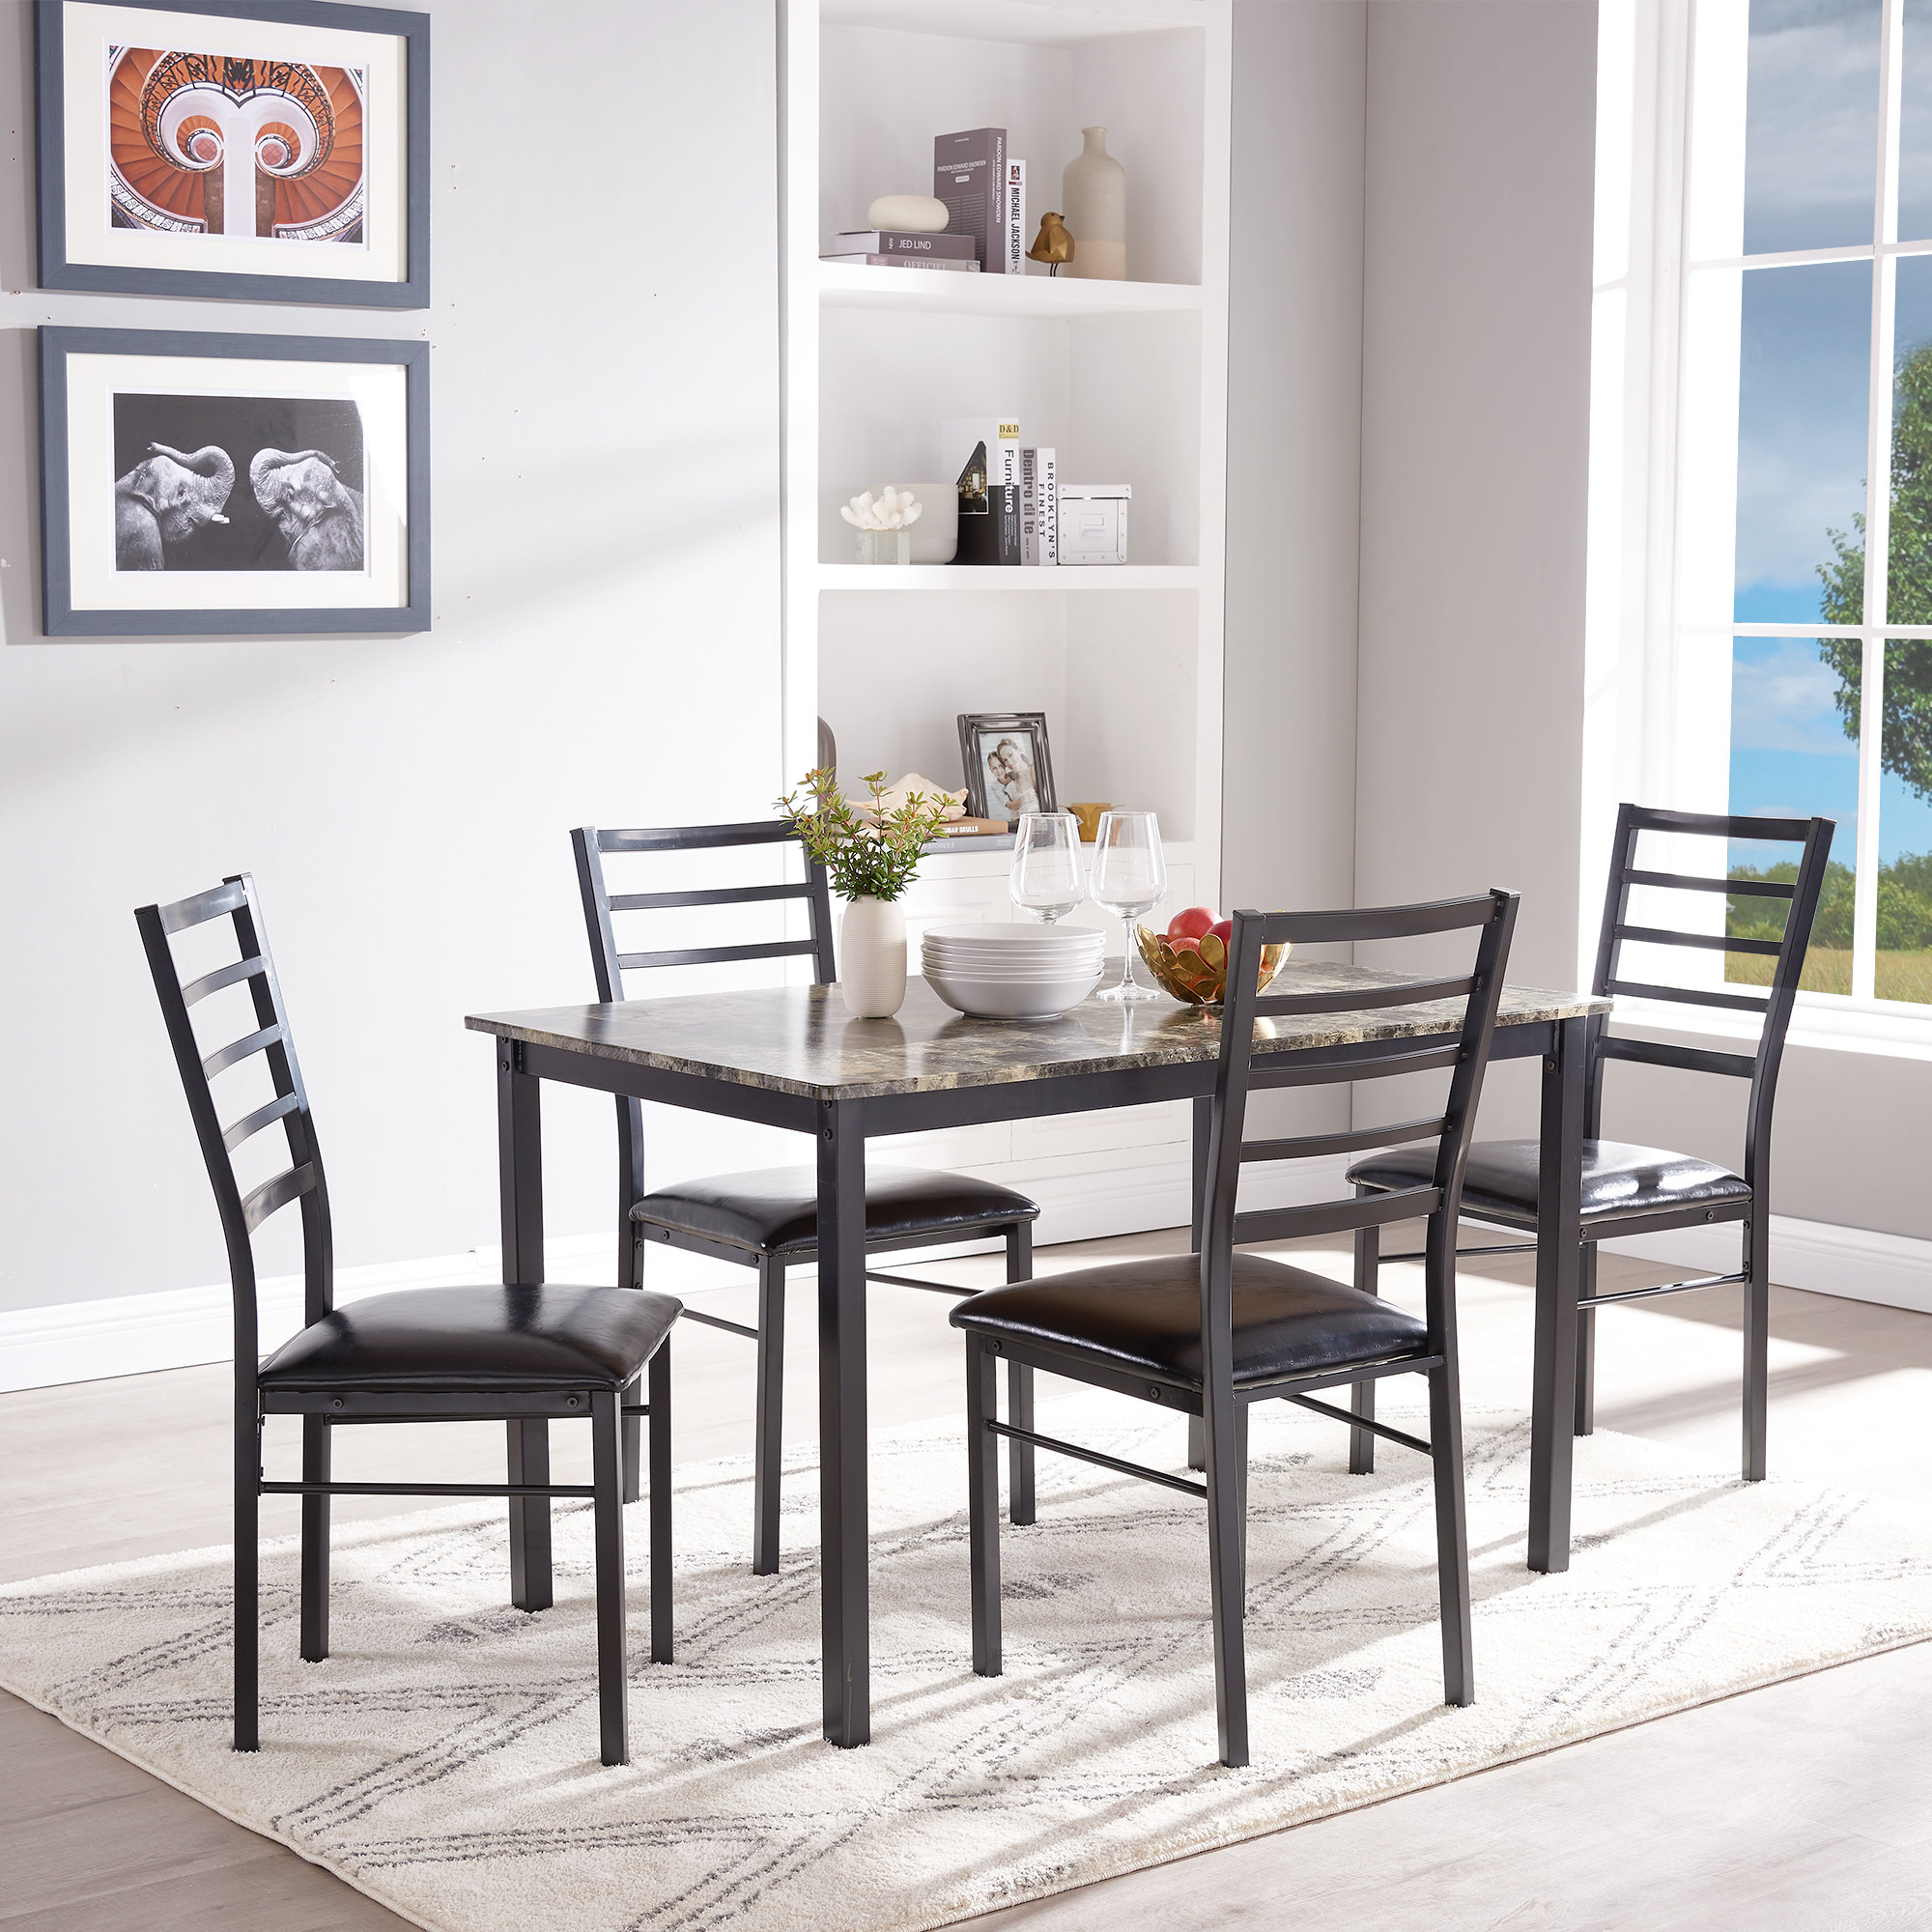 Details About Winston Porter Mukai 5 Piece Dining Set Within Most Up To Date Casiano 5 Piece Dining Sets (Image 8 of 20)